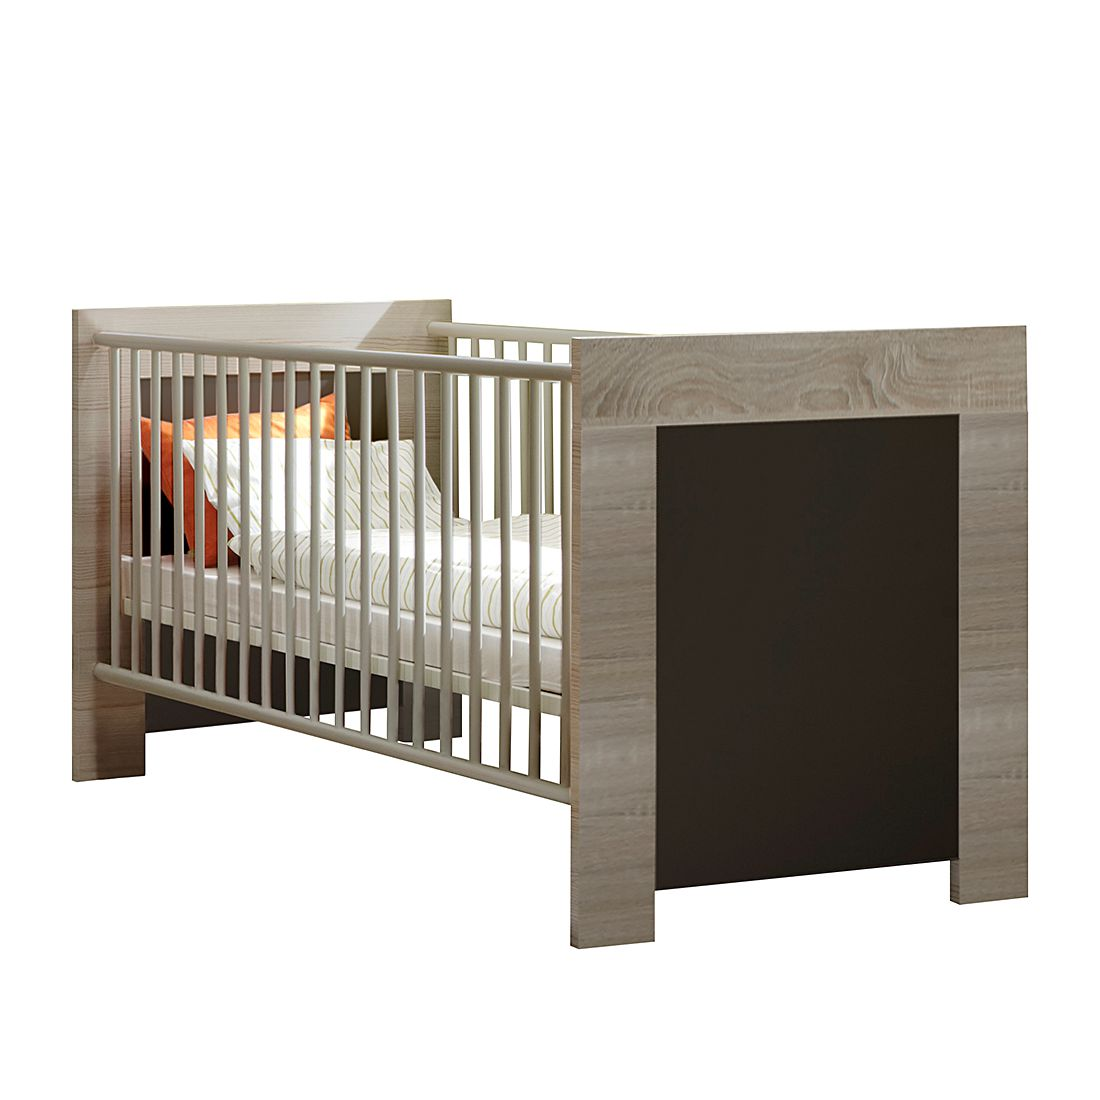 babybett emily eiche grau wimex m wi 001565 kauf dir. Black Bedroom Furniture Sets. Home Design Ideas